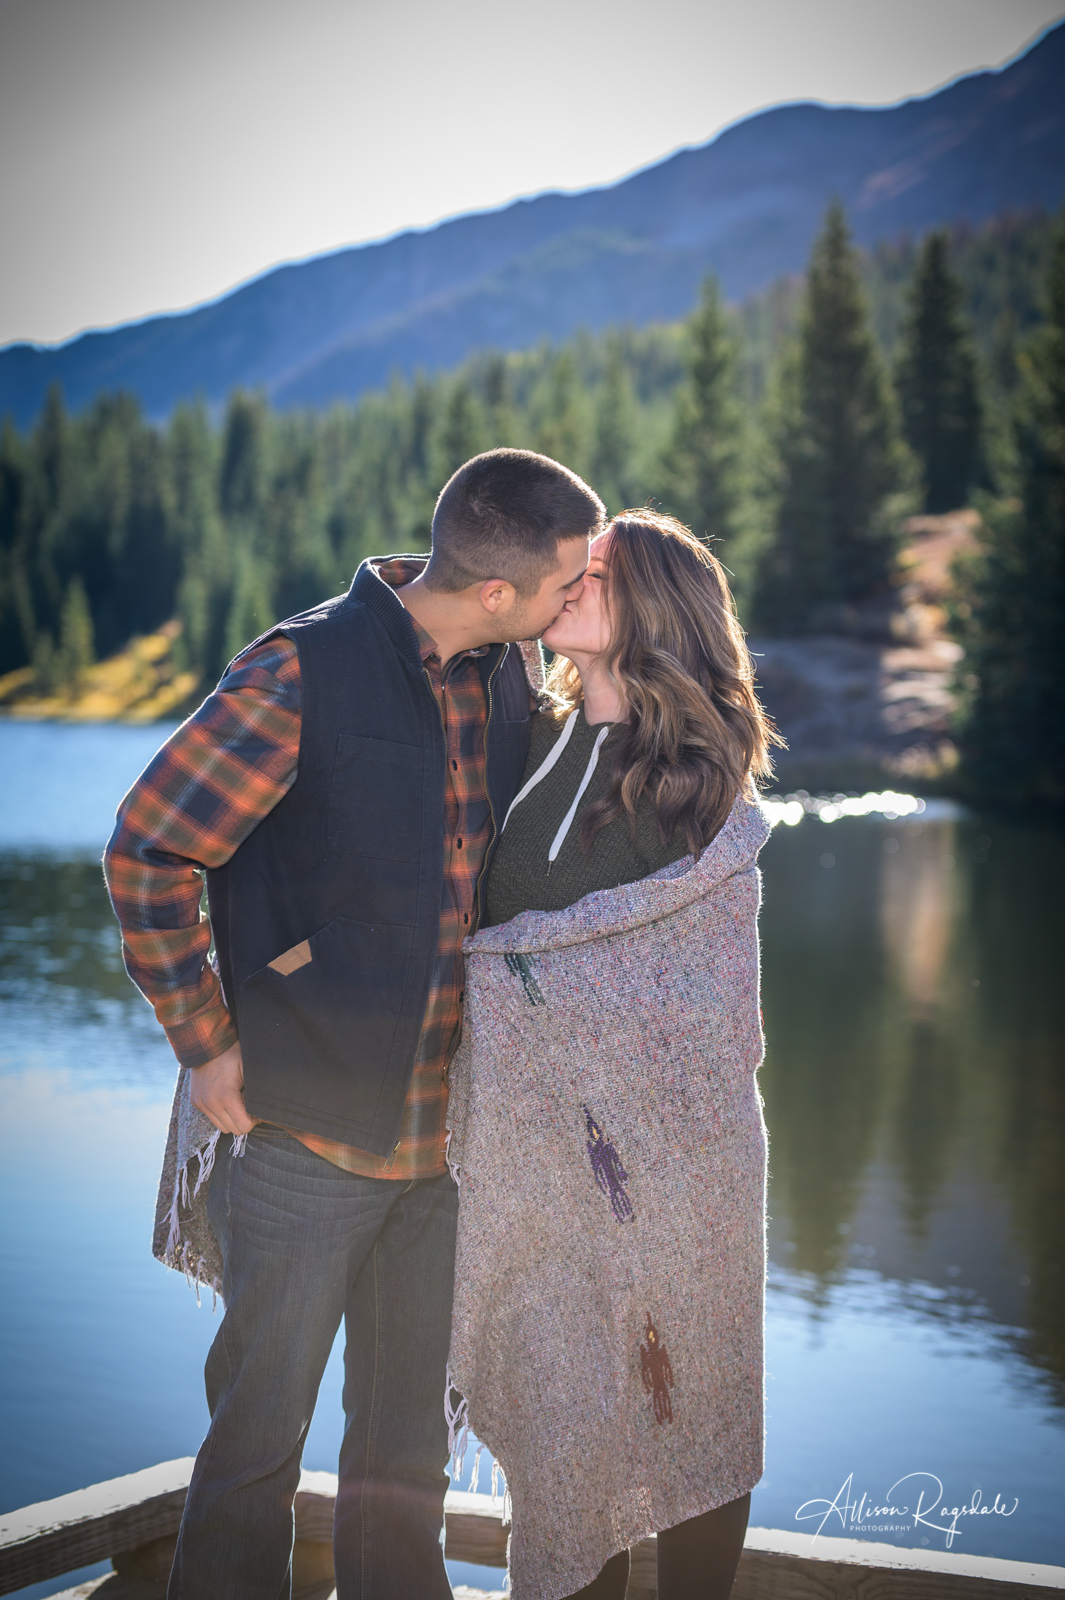 Engagement photos in Durango